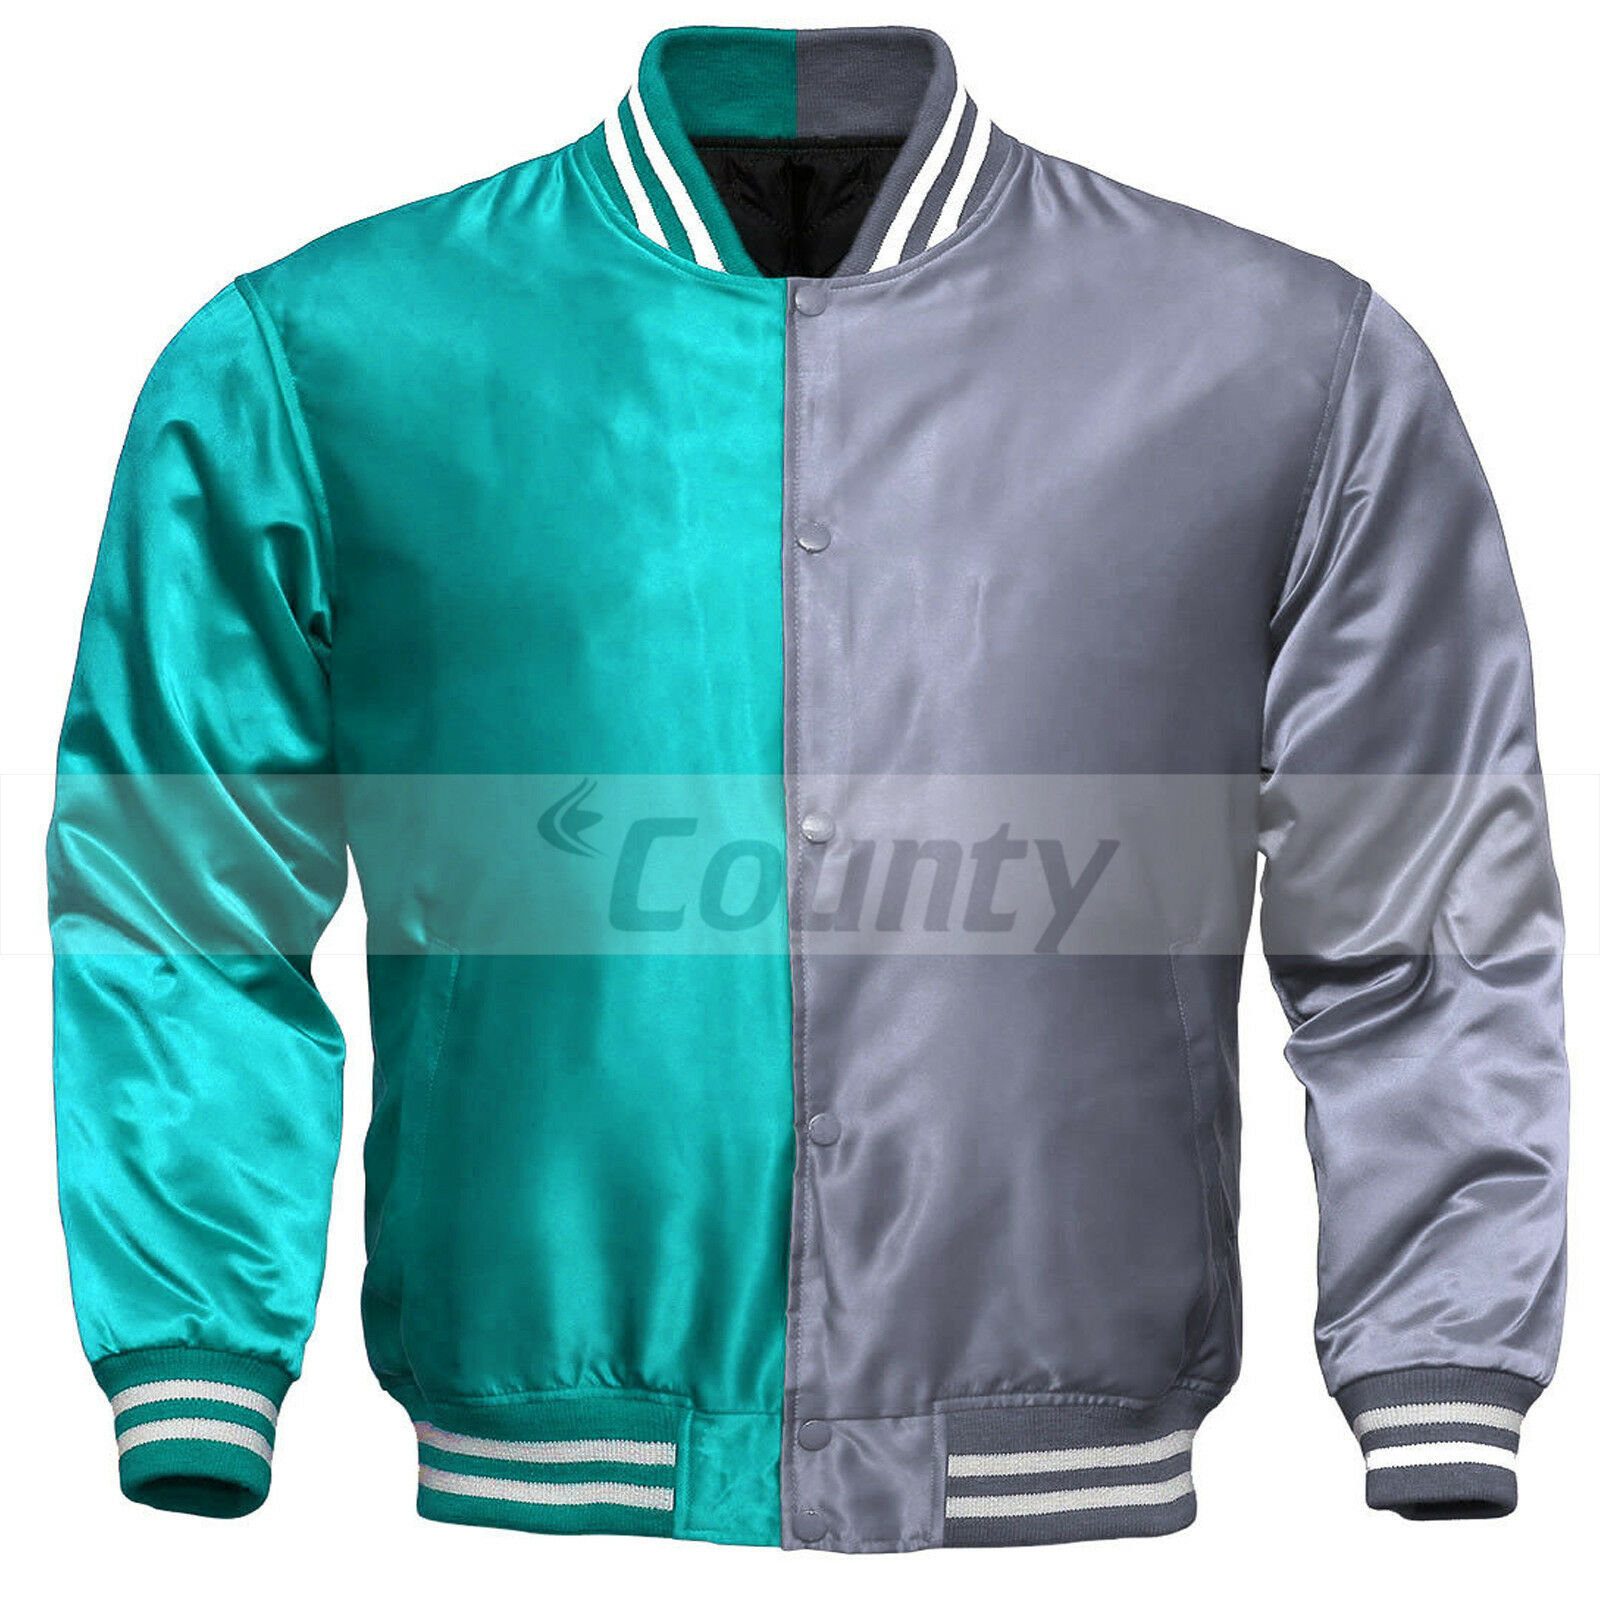 Primary image for Letterman Baseball College Varsity Bomber Sports Jacket Turquoise Silver Satin